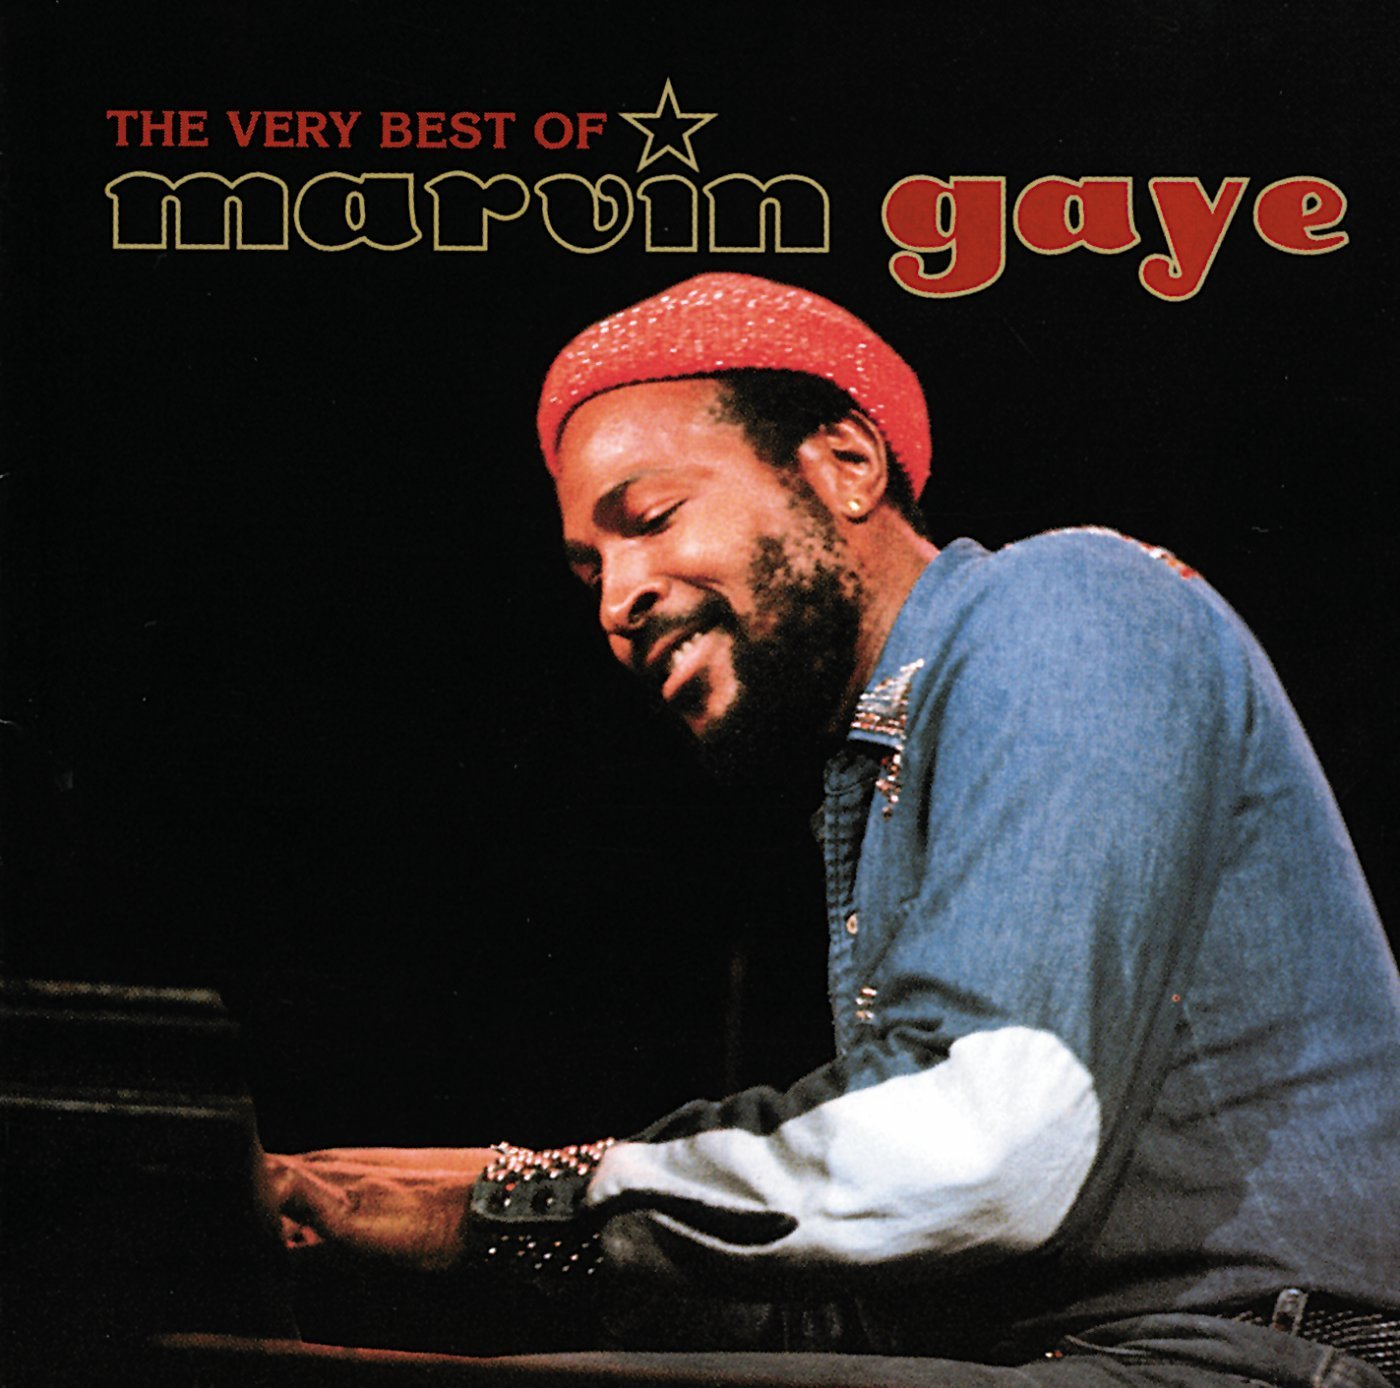 MARVIN GAYE - CD THE VERY BEST OF